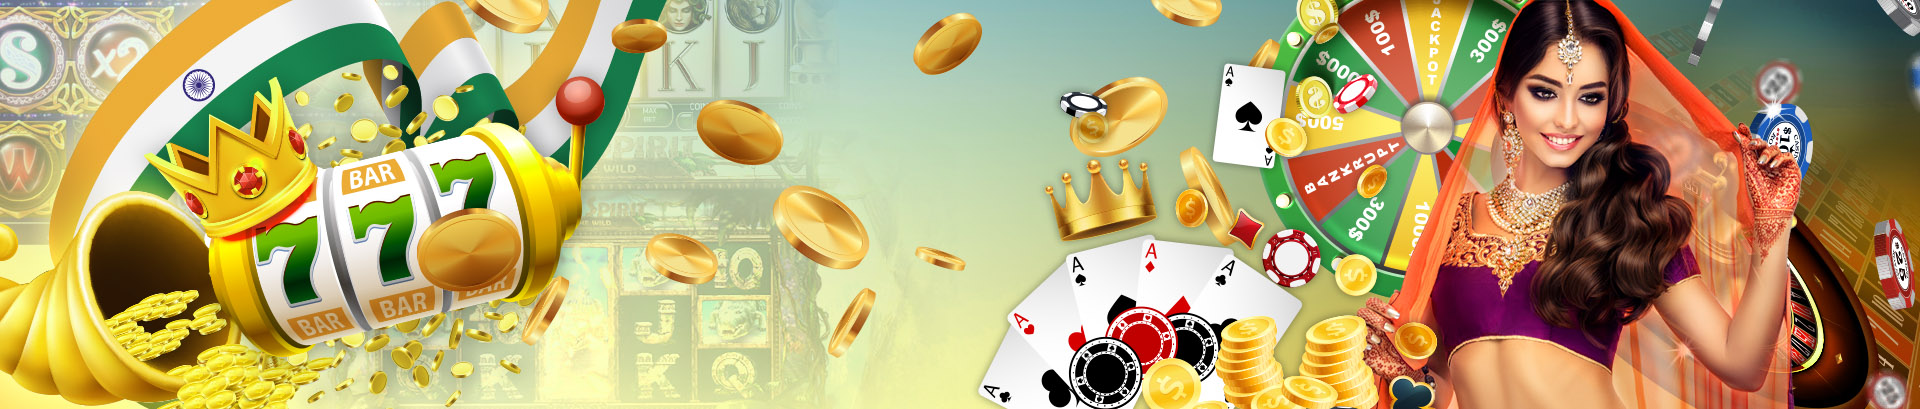 Online Gambling- Your Complete Guide to Playing Casino Games in Legal Indian Online Casinos